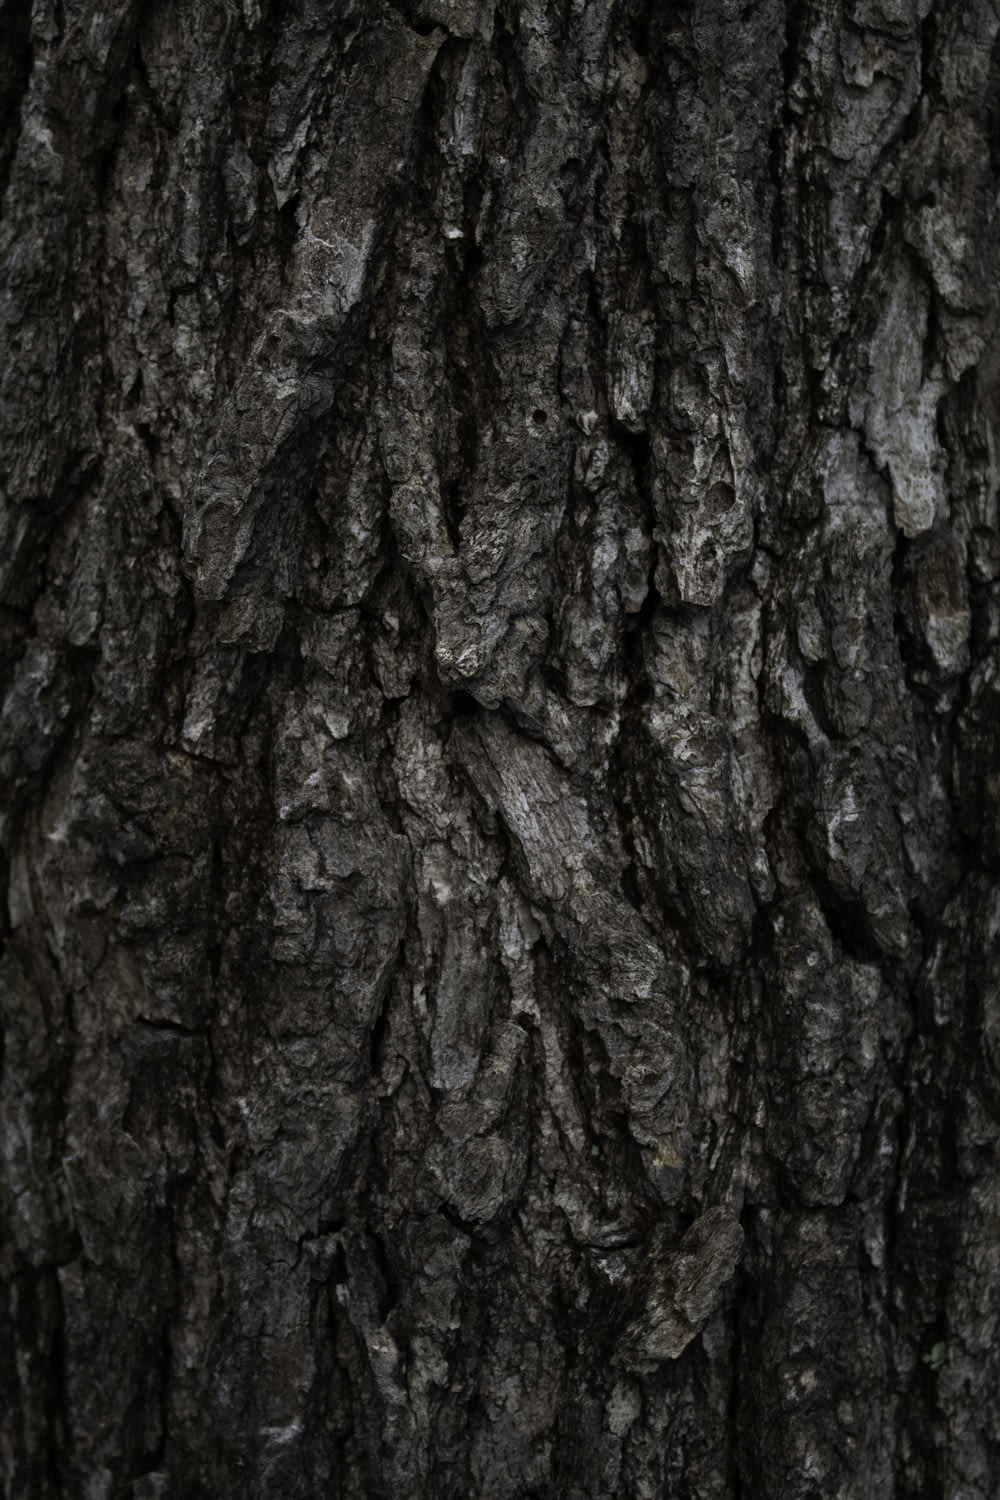 close up photo of tree